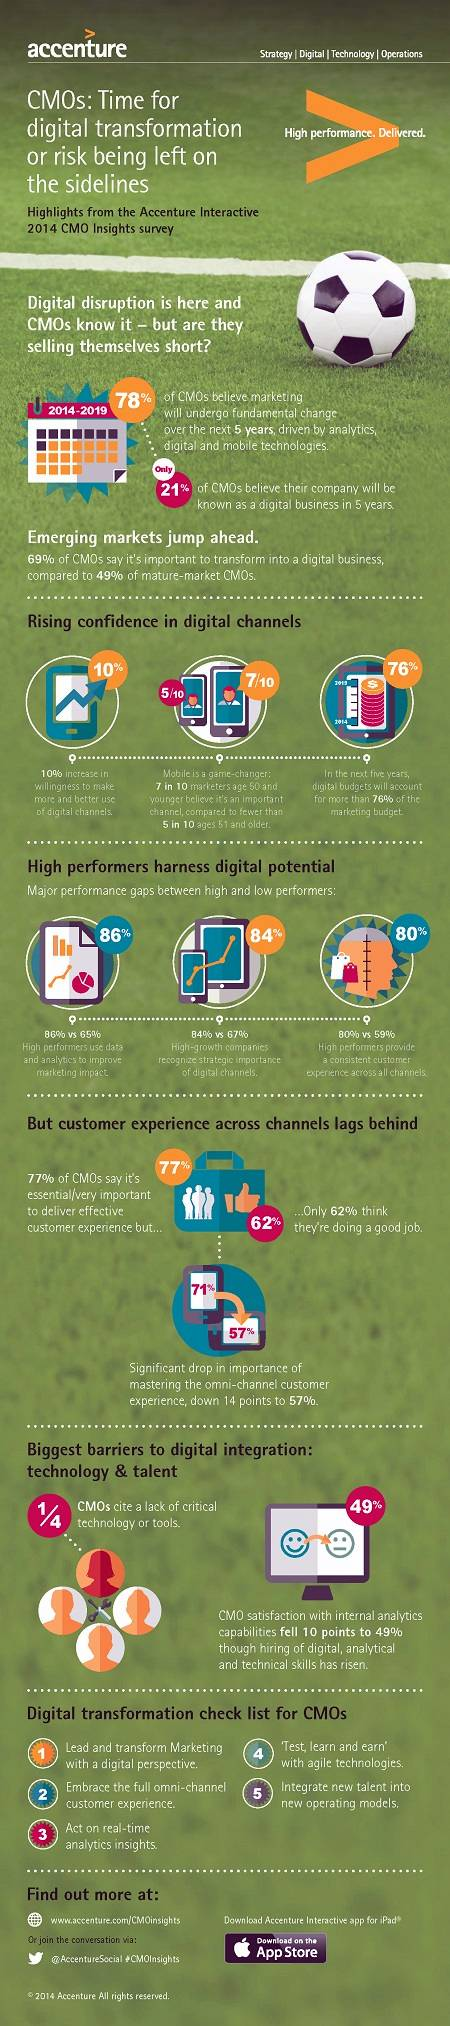 Accenture CMO Insights 2014 Infographic